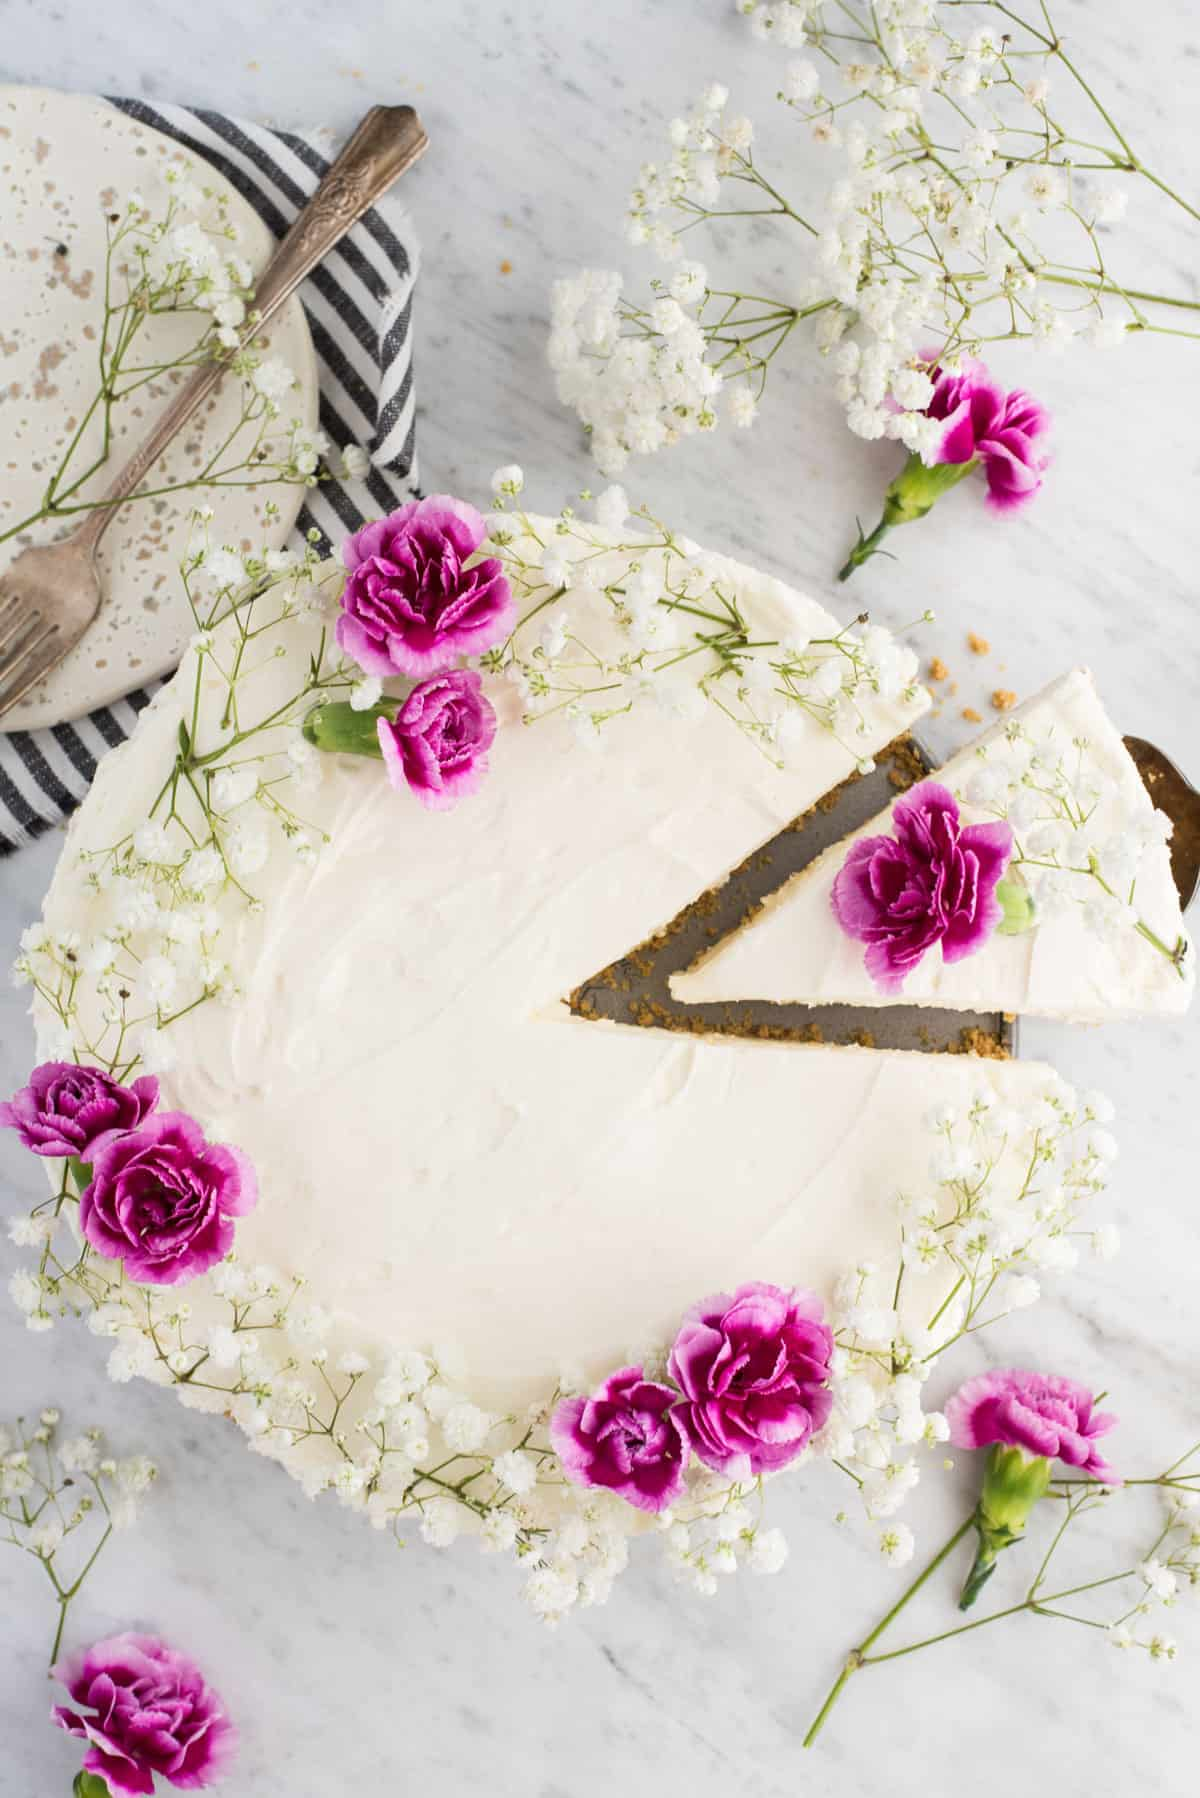 aerial view of whole no bake cheesecake with white and pink flowers on white marble background with one slice slightly removed